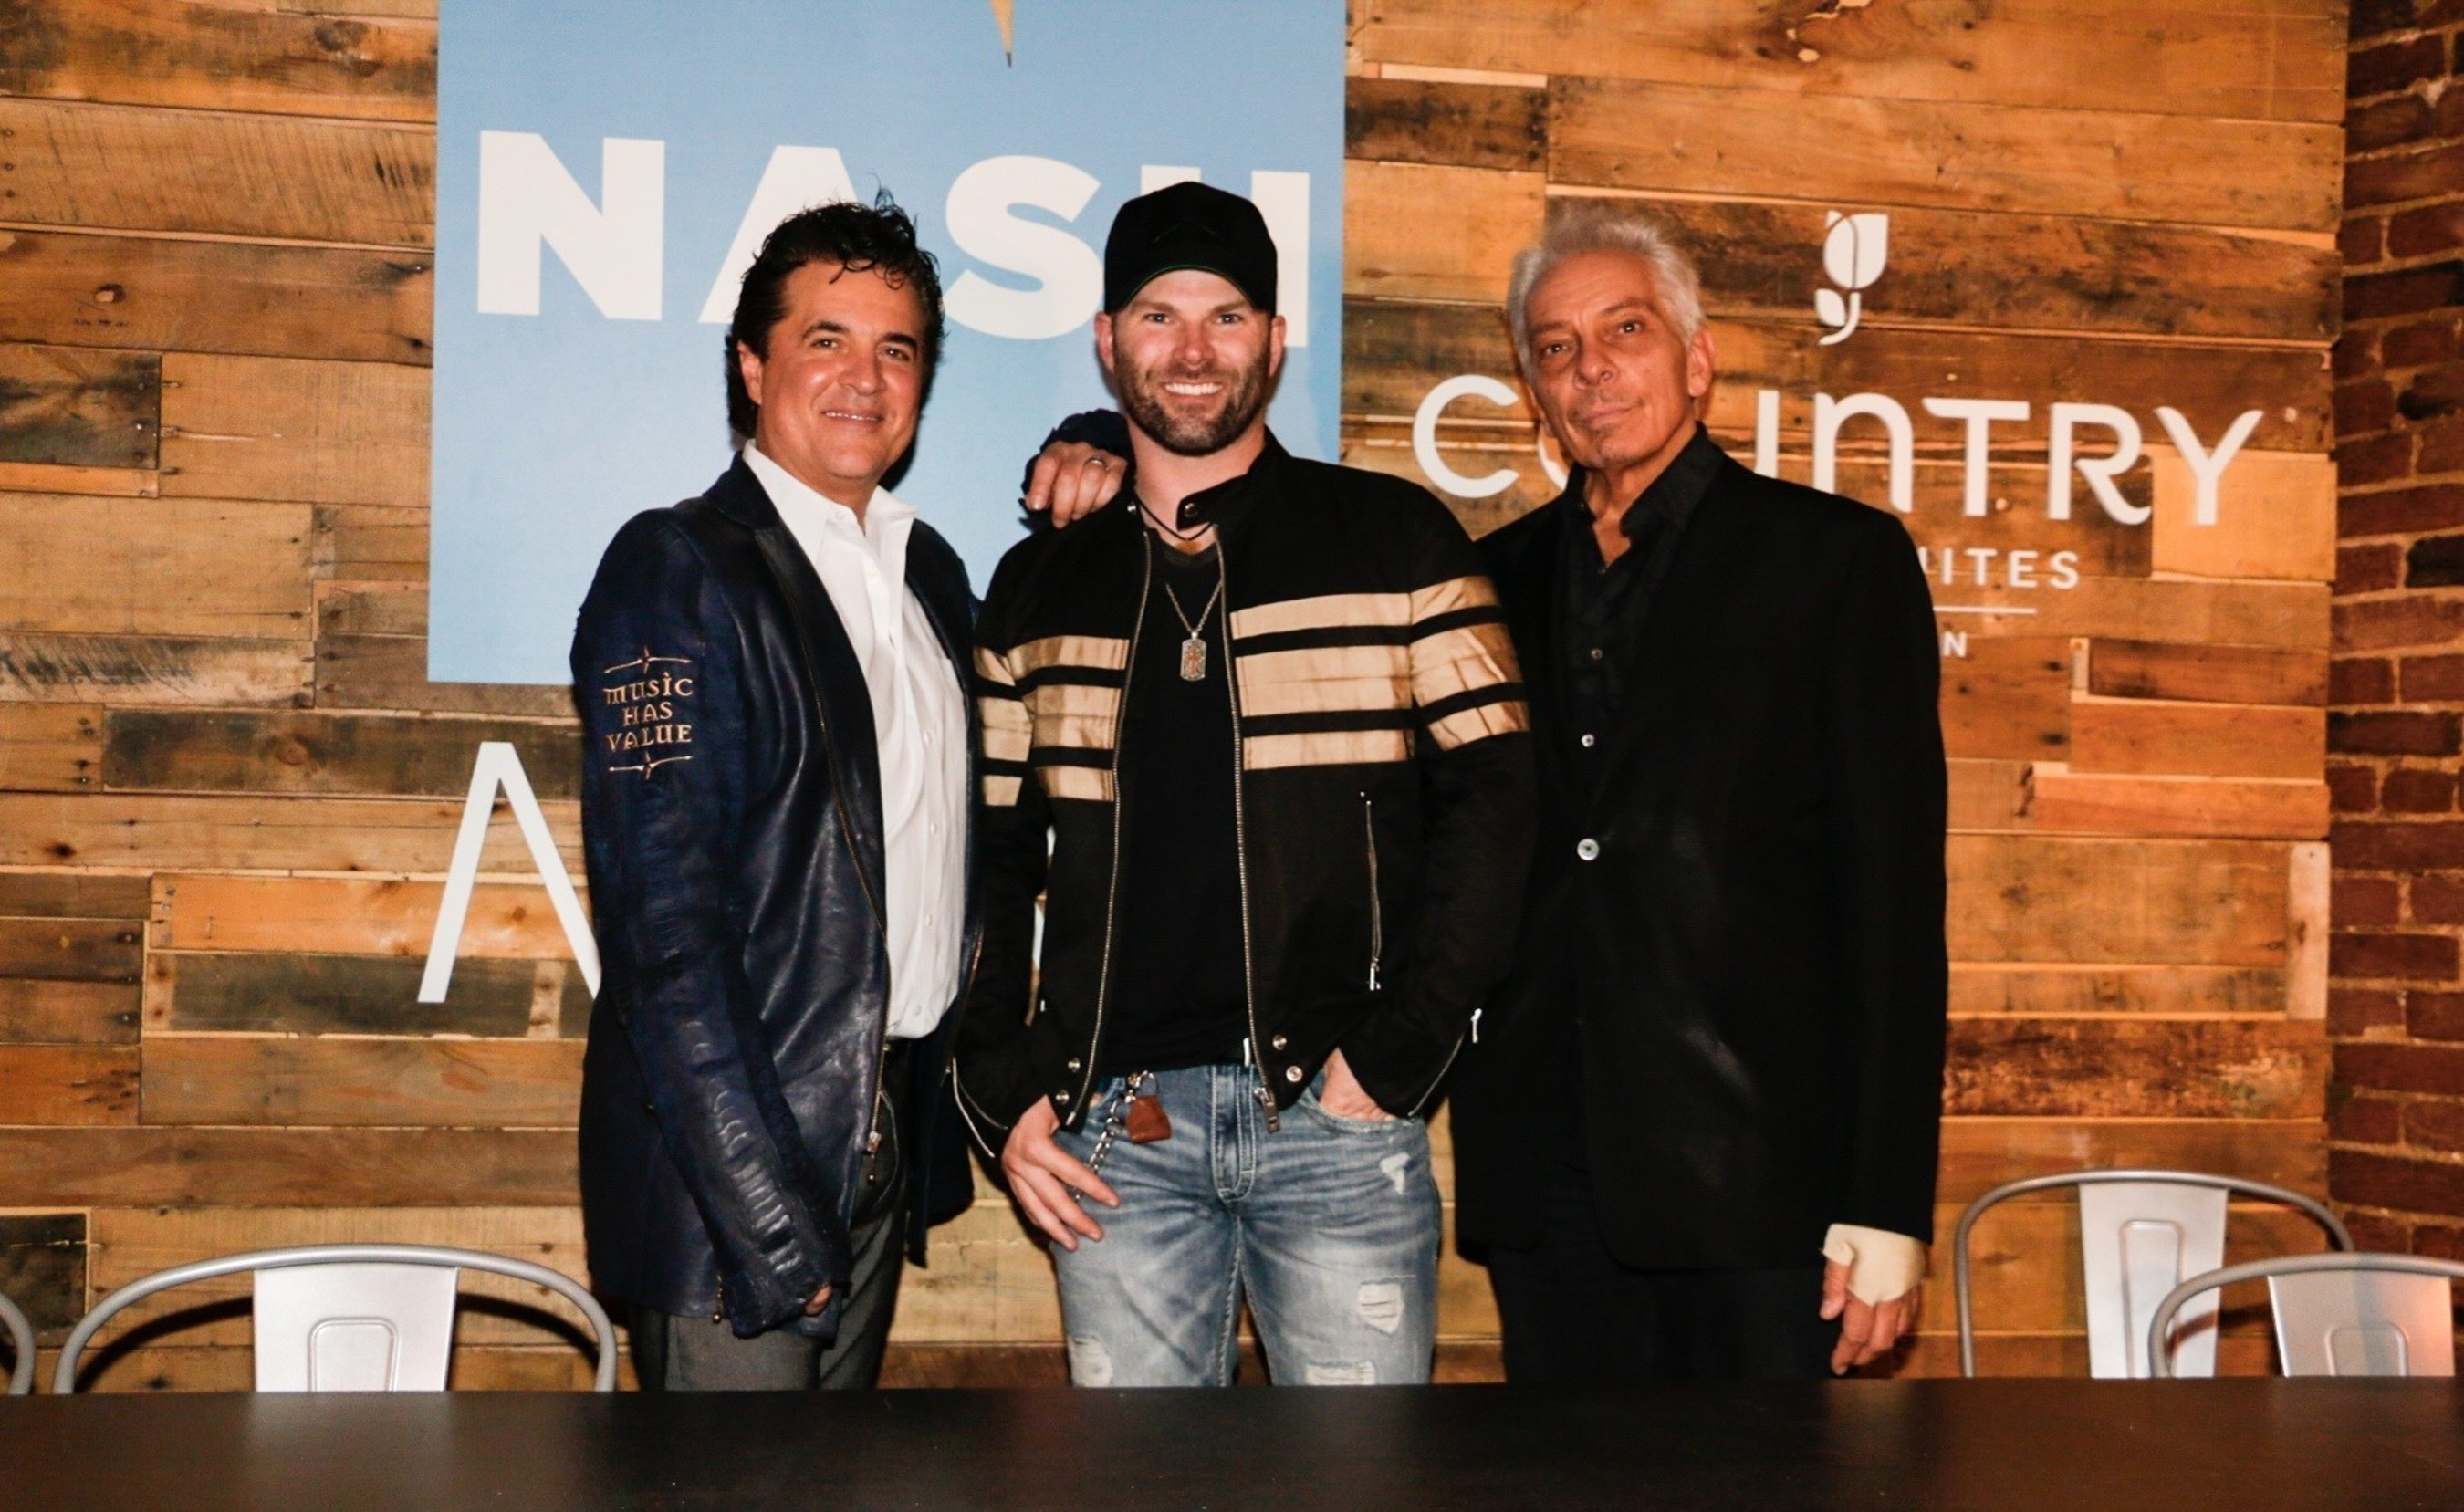 Scott Borchetta (L), Founder, President and CEO of Big Machine Label Group, flanks NASH Next 2016 Challenge winner, Country singer Todd O'Neill, with Mike McVay (R), SVP, Content and Programming, Cumulus Media and Westwood One, at Mercy Lounge in Nashville on Tuesday, October 25, 2016.